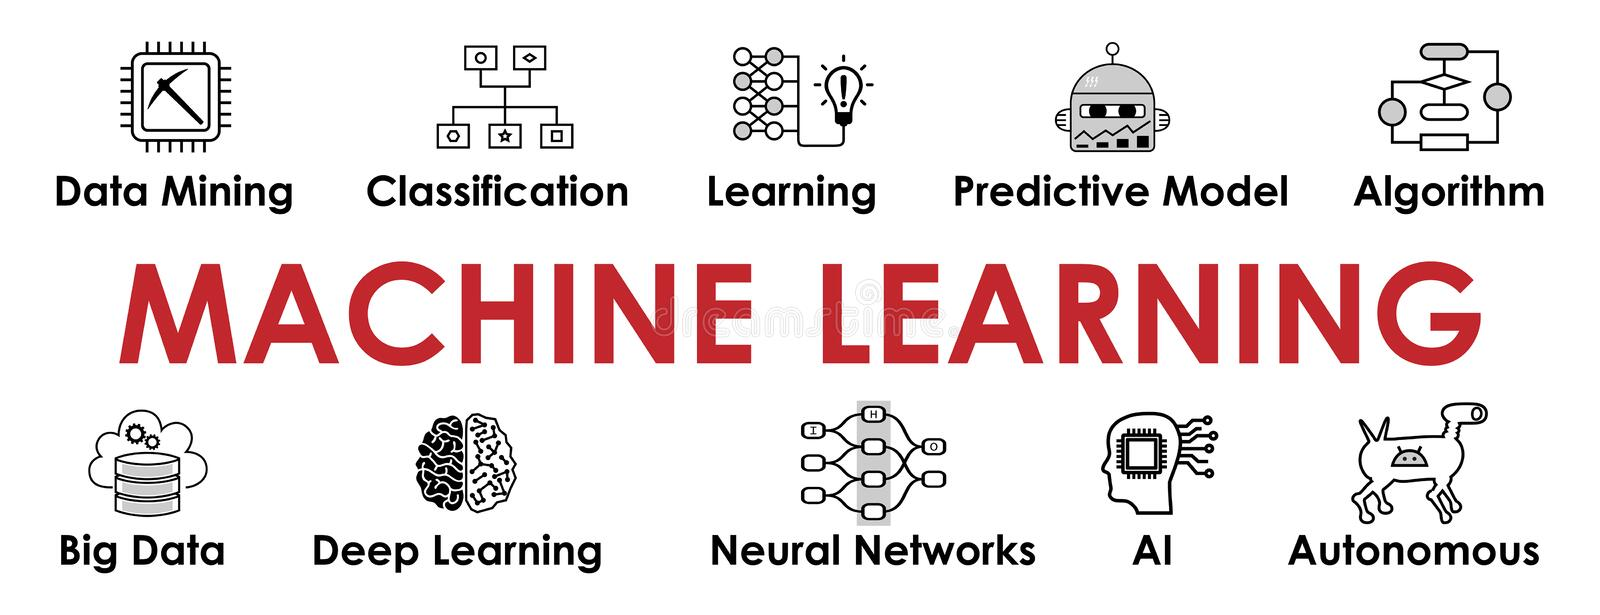 Machine Learning banner royalty free illustration